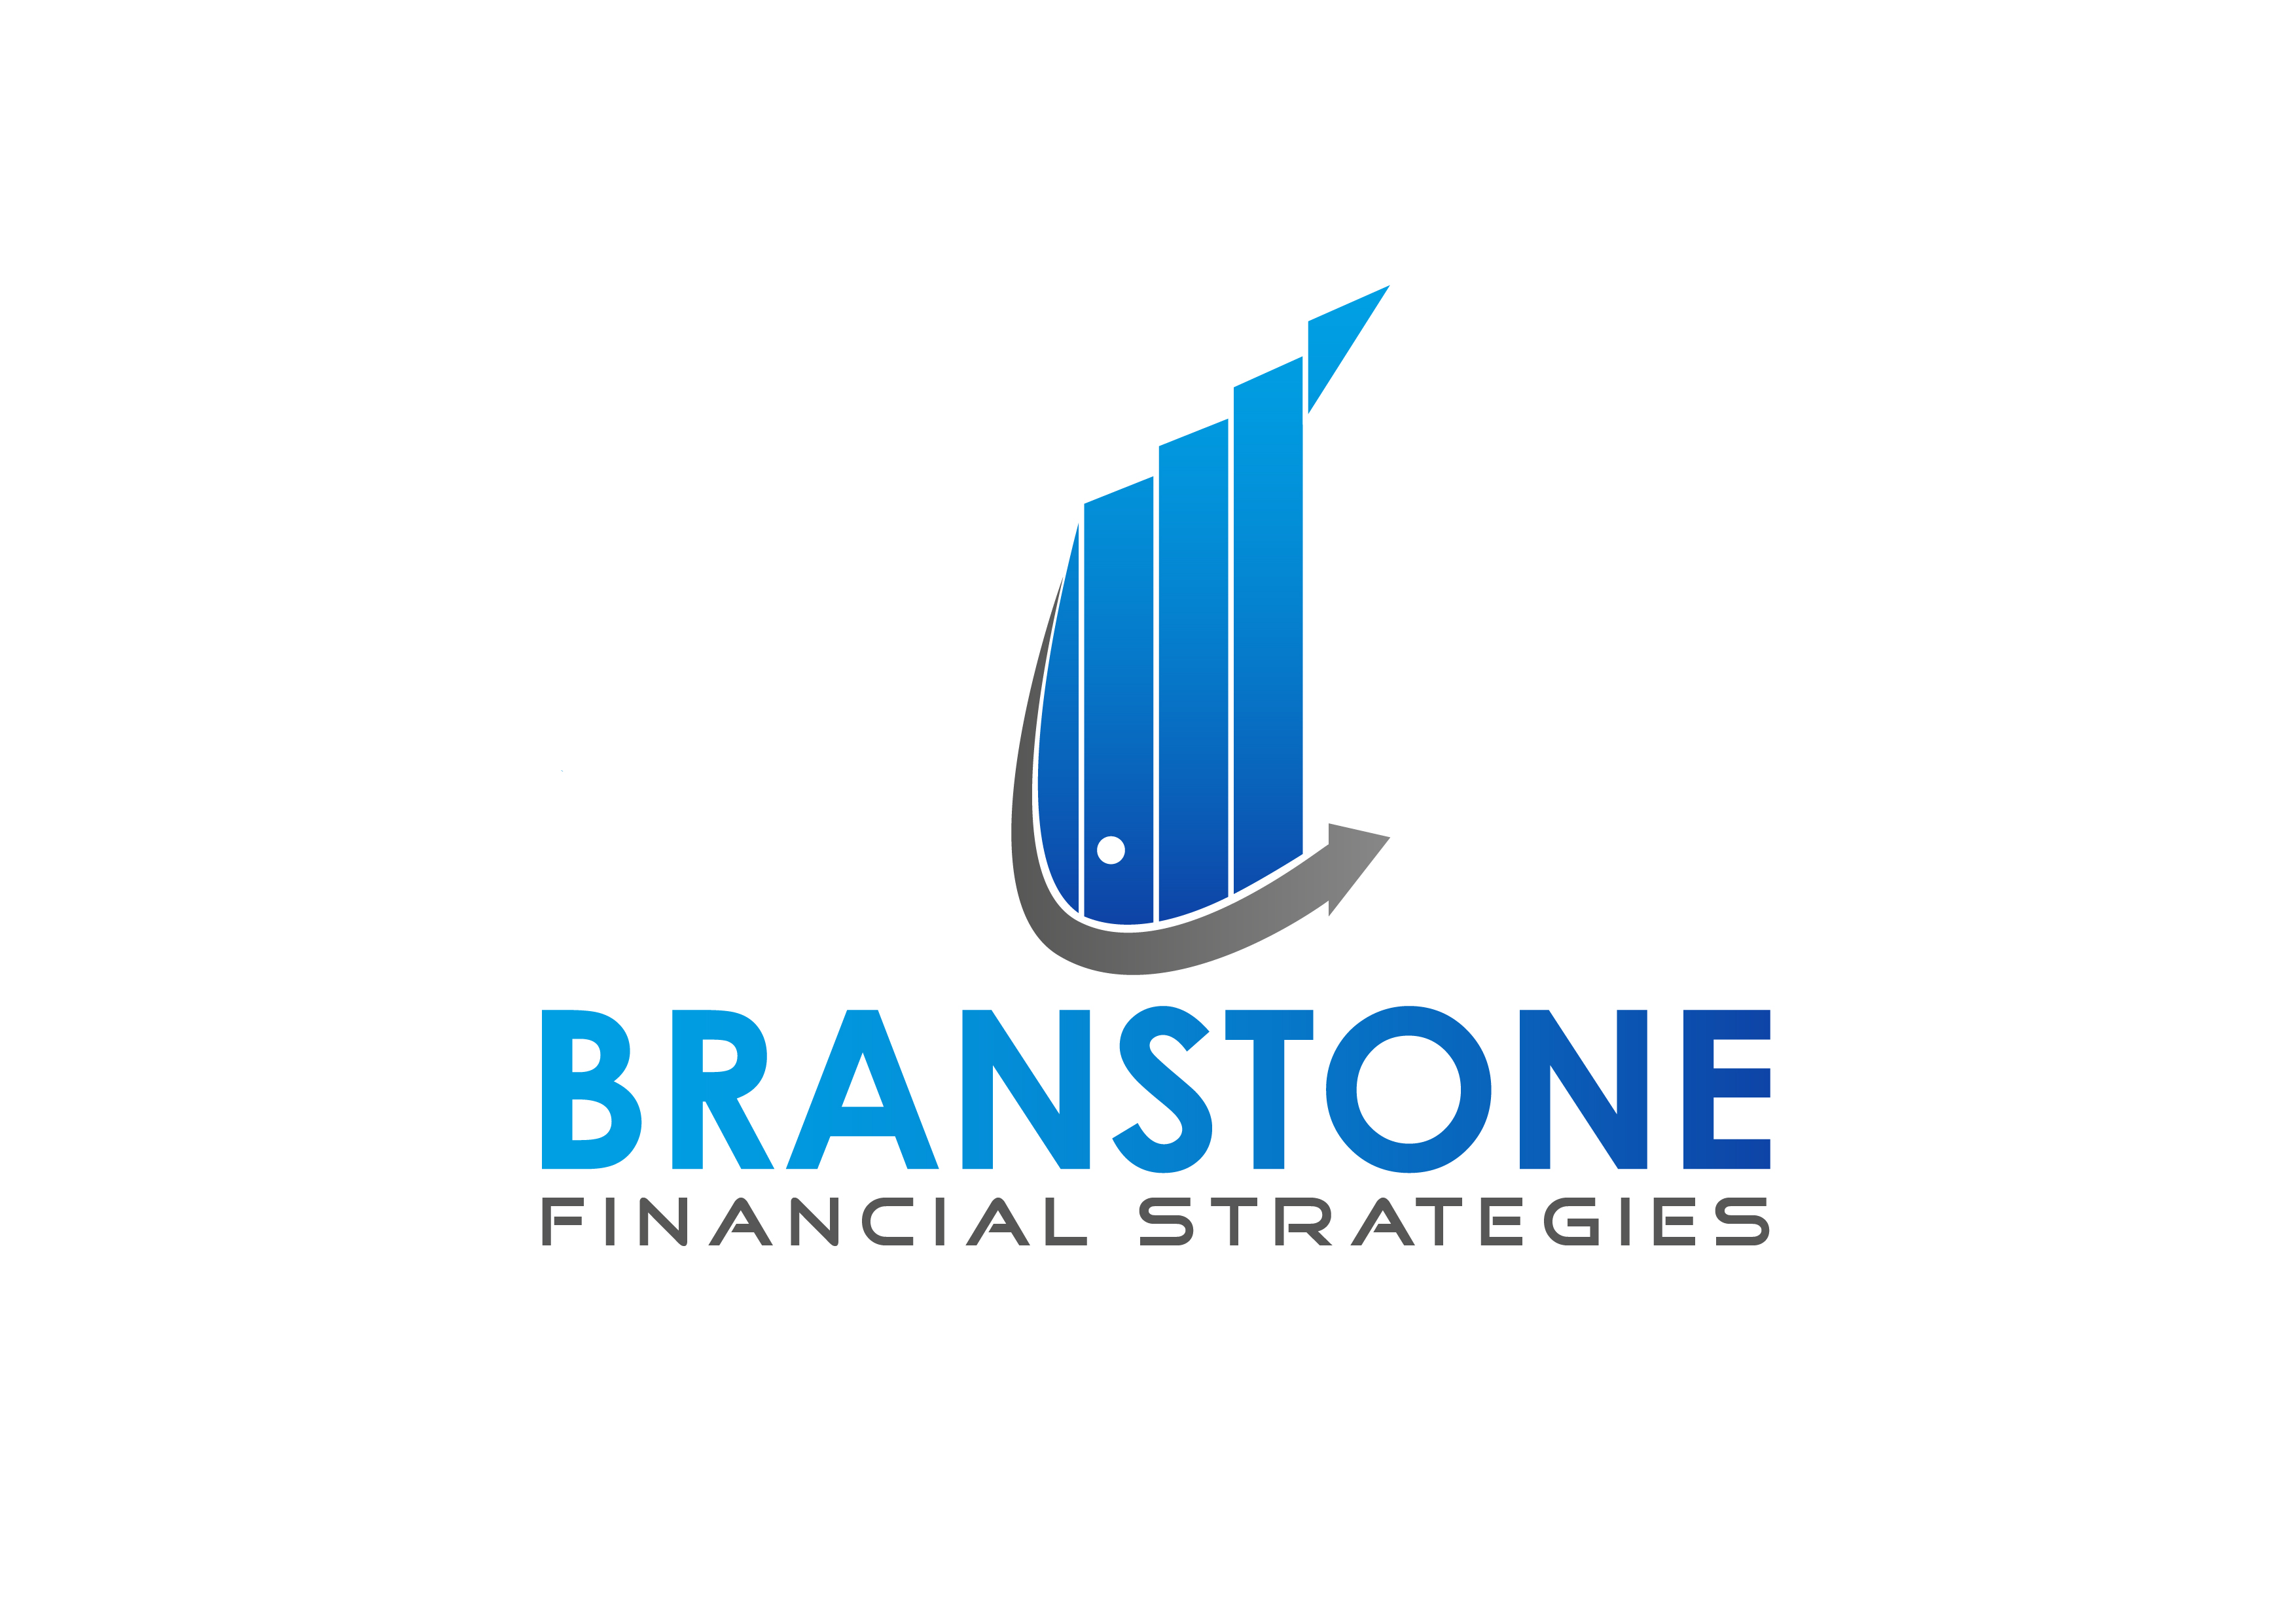 Logo Design by 3draw - Entry No. 41 in the Logo Design Contest Inspiring Logo Design for Branstone Financial Strategies.